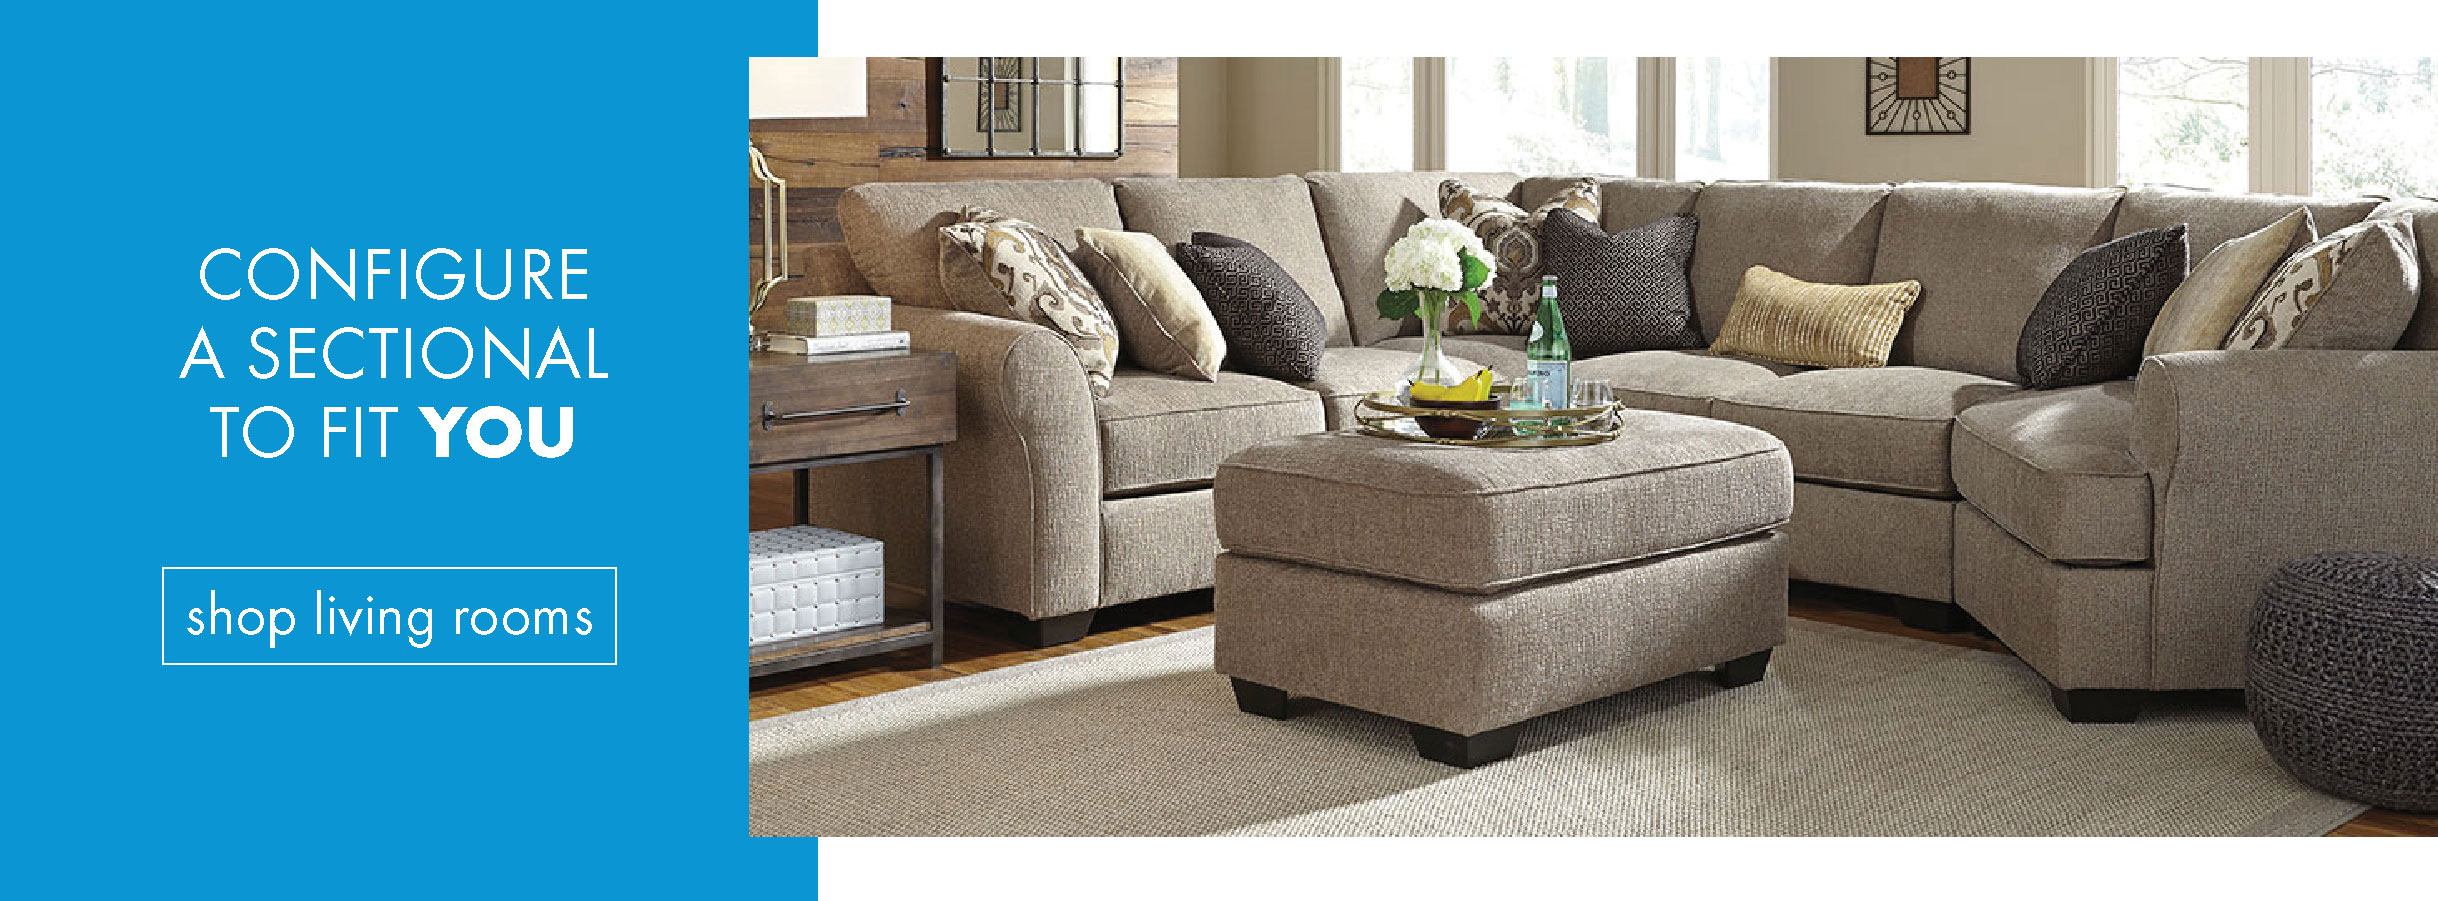 Best Sofas Chicago | Living Room Sofa Chairs For Living Room ...